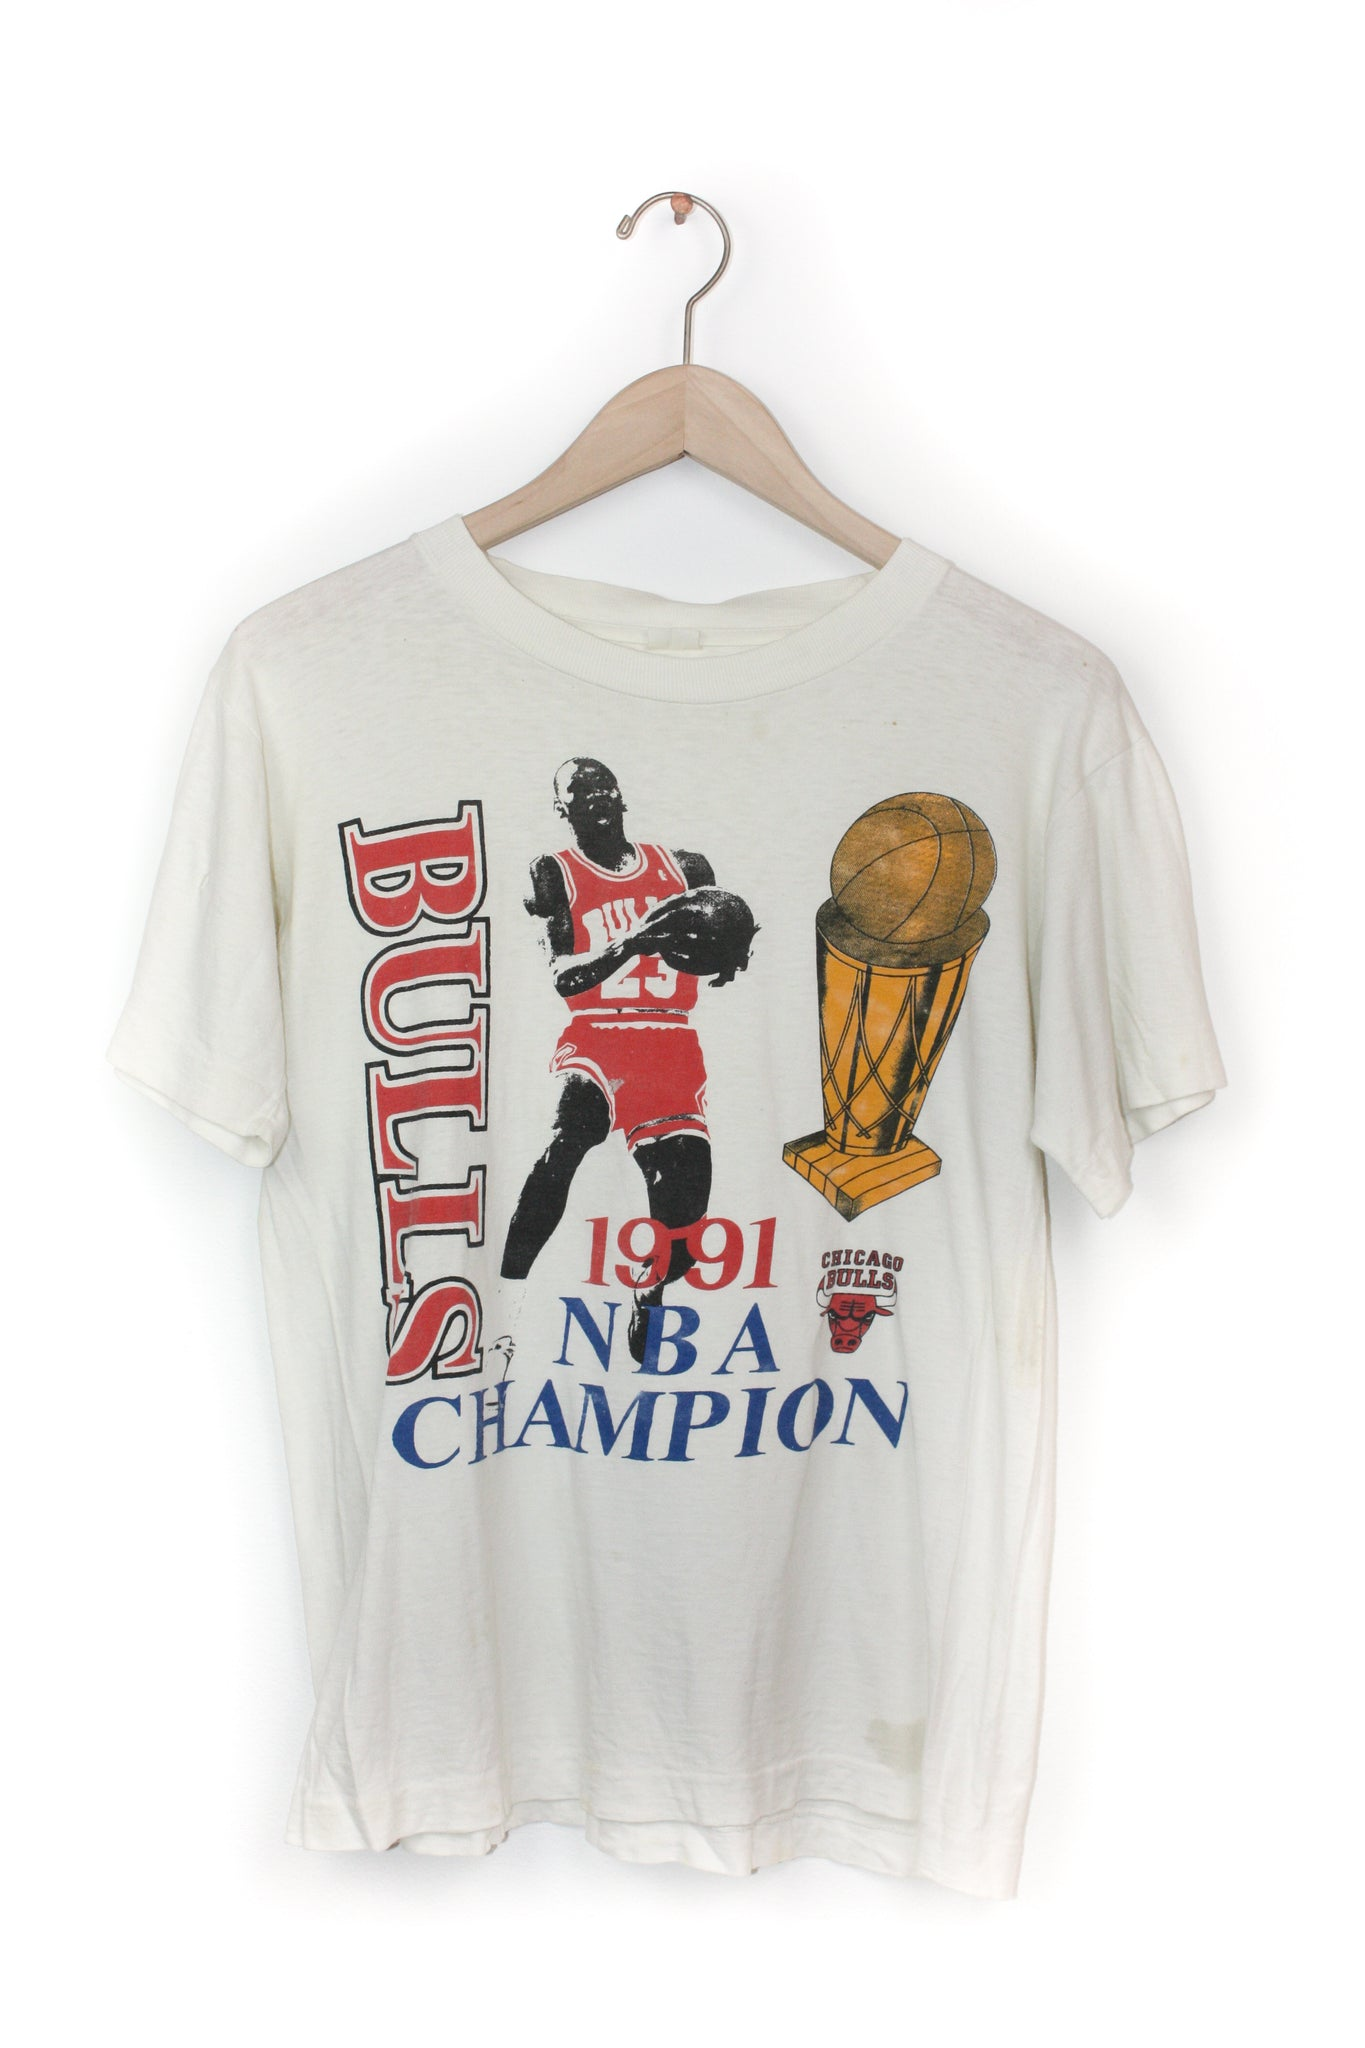 1991 CHICAGO BULLS CHAMPS